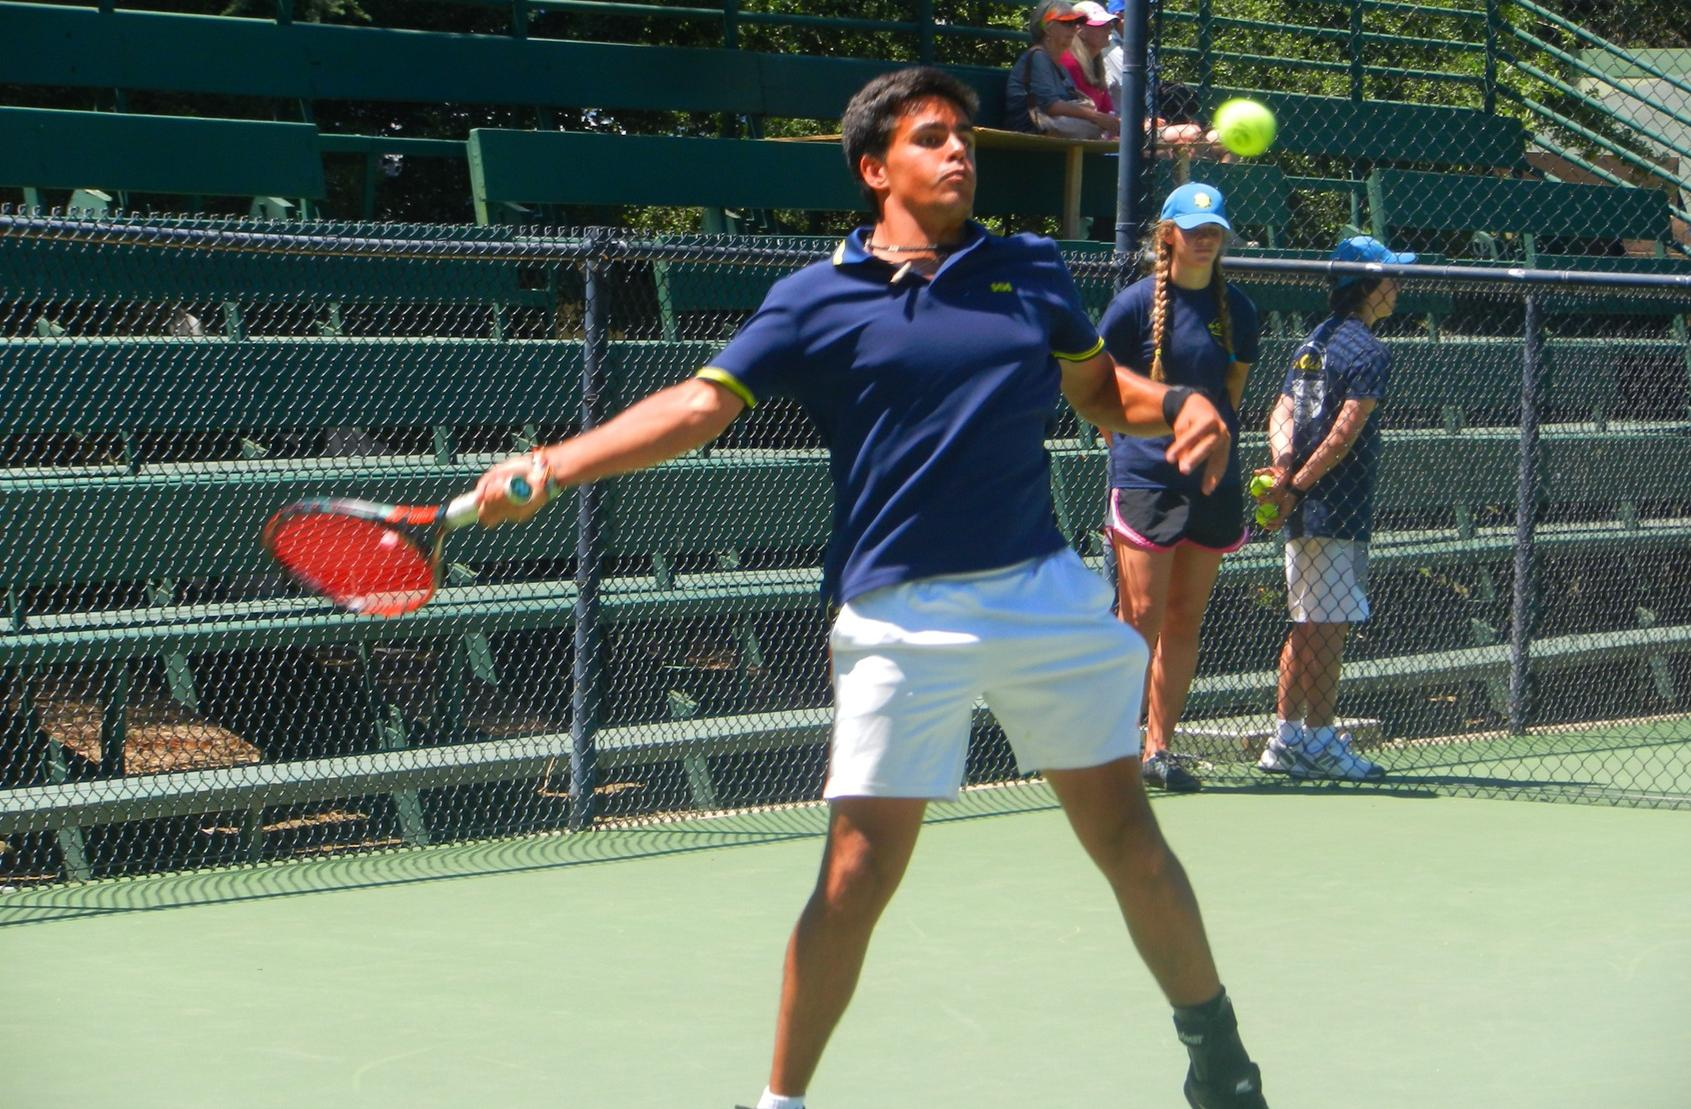 Javier Callejo going after his second state tennis singles title